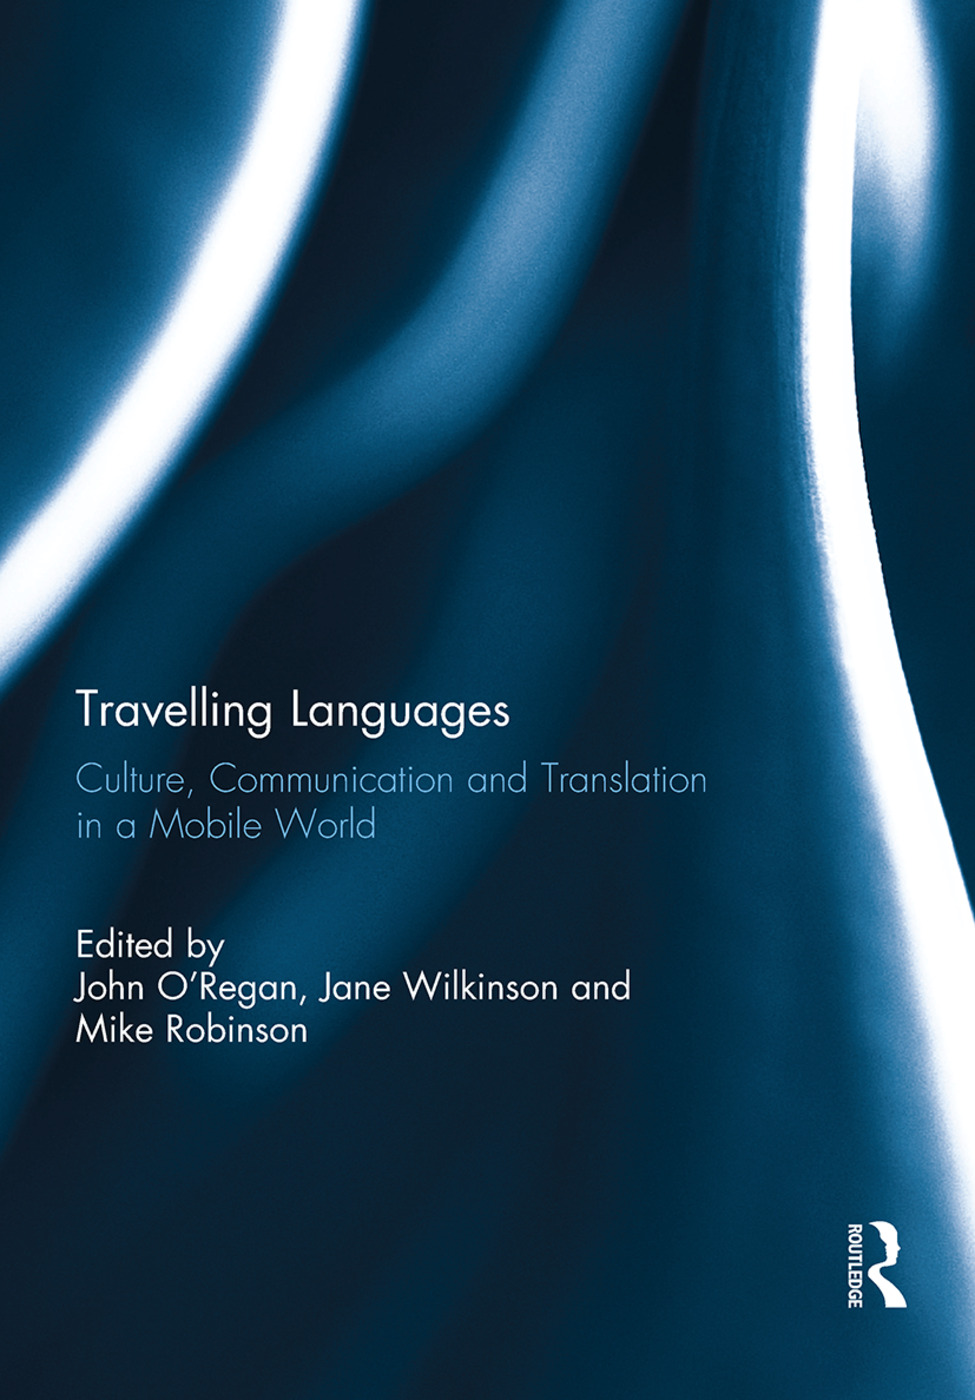 Travelling Languages: Culture, Communication and Translation in a Mobile World book cover